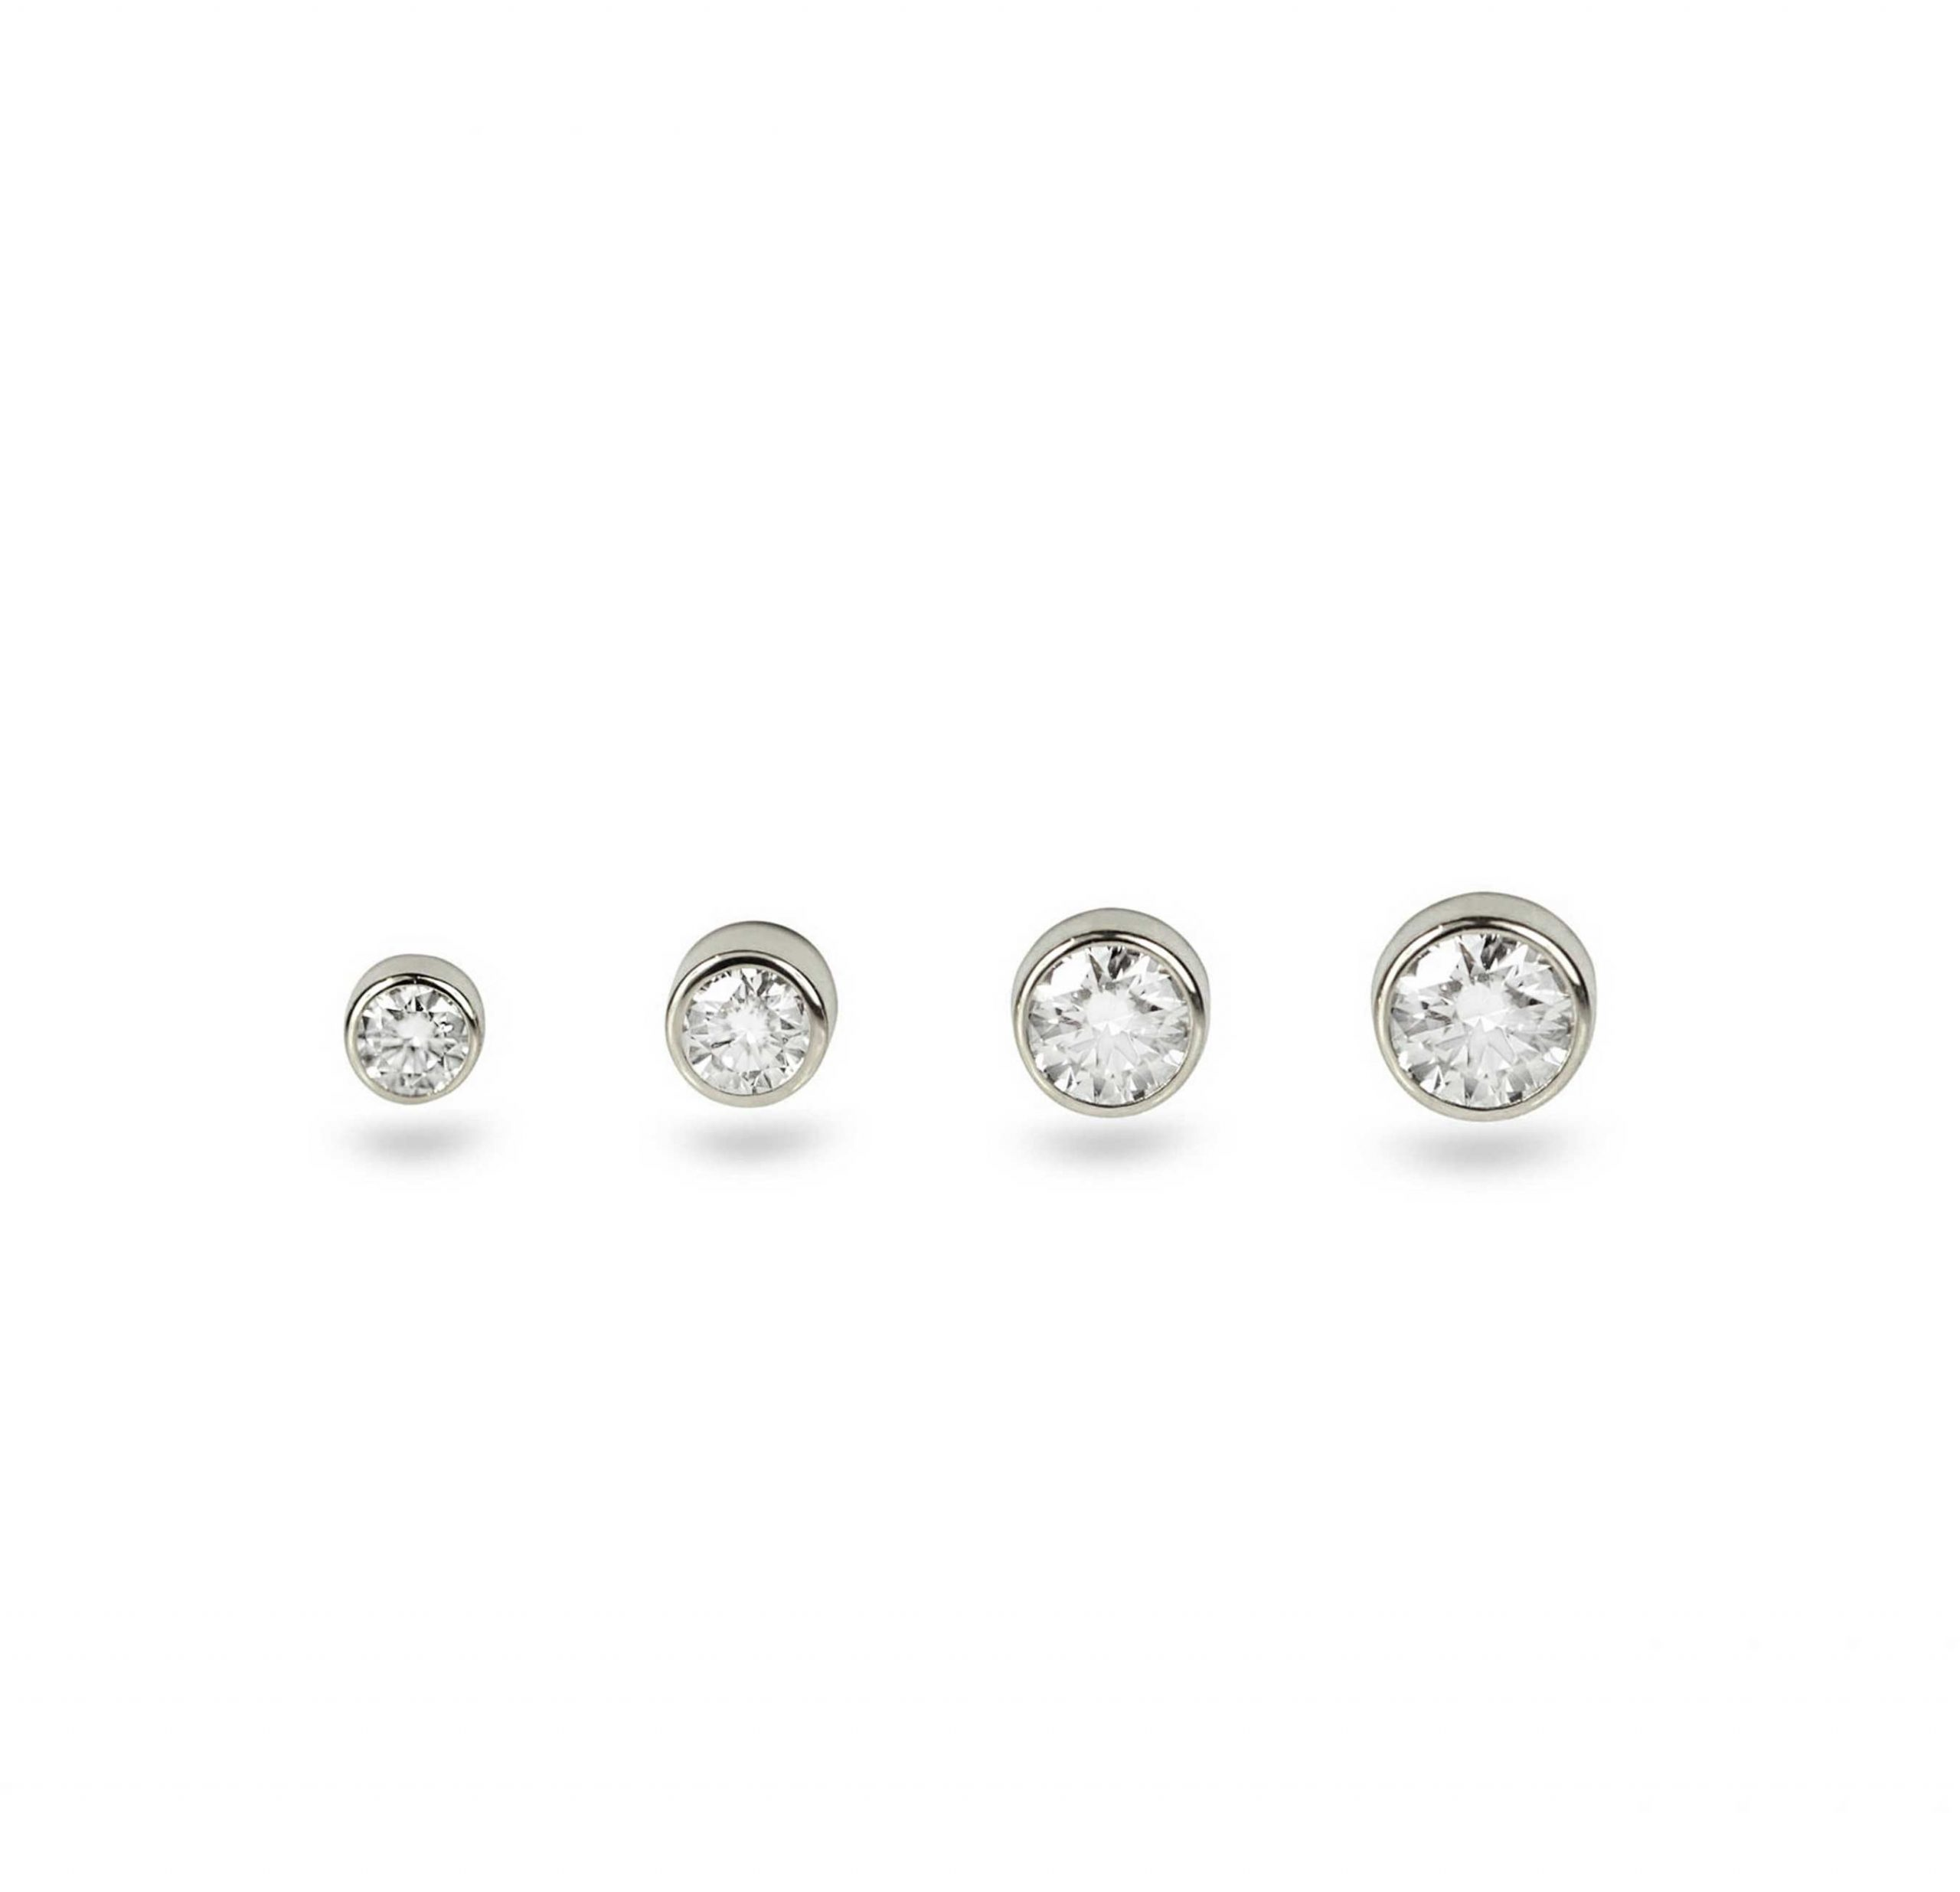 diamond-piercing-studs-screw-backs-gold-buy-online-lena-cohen-uk-3